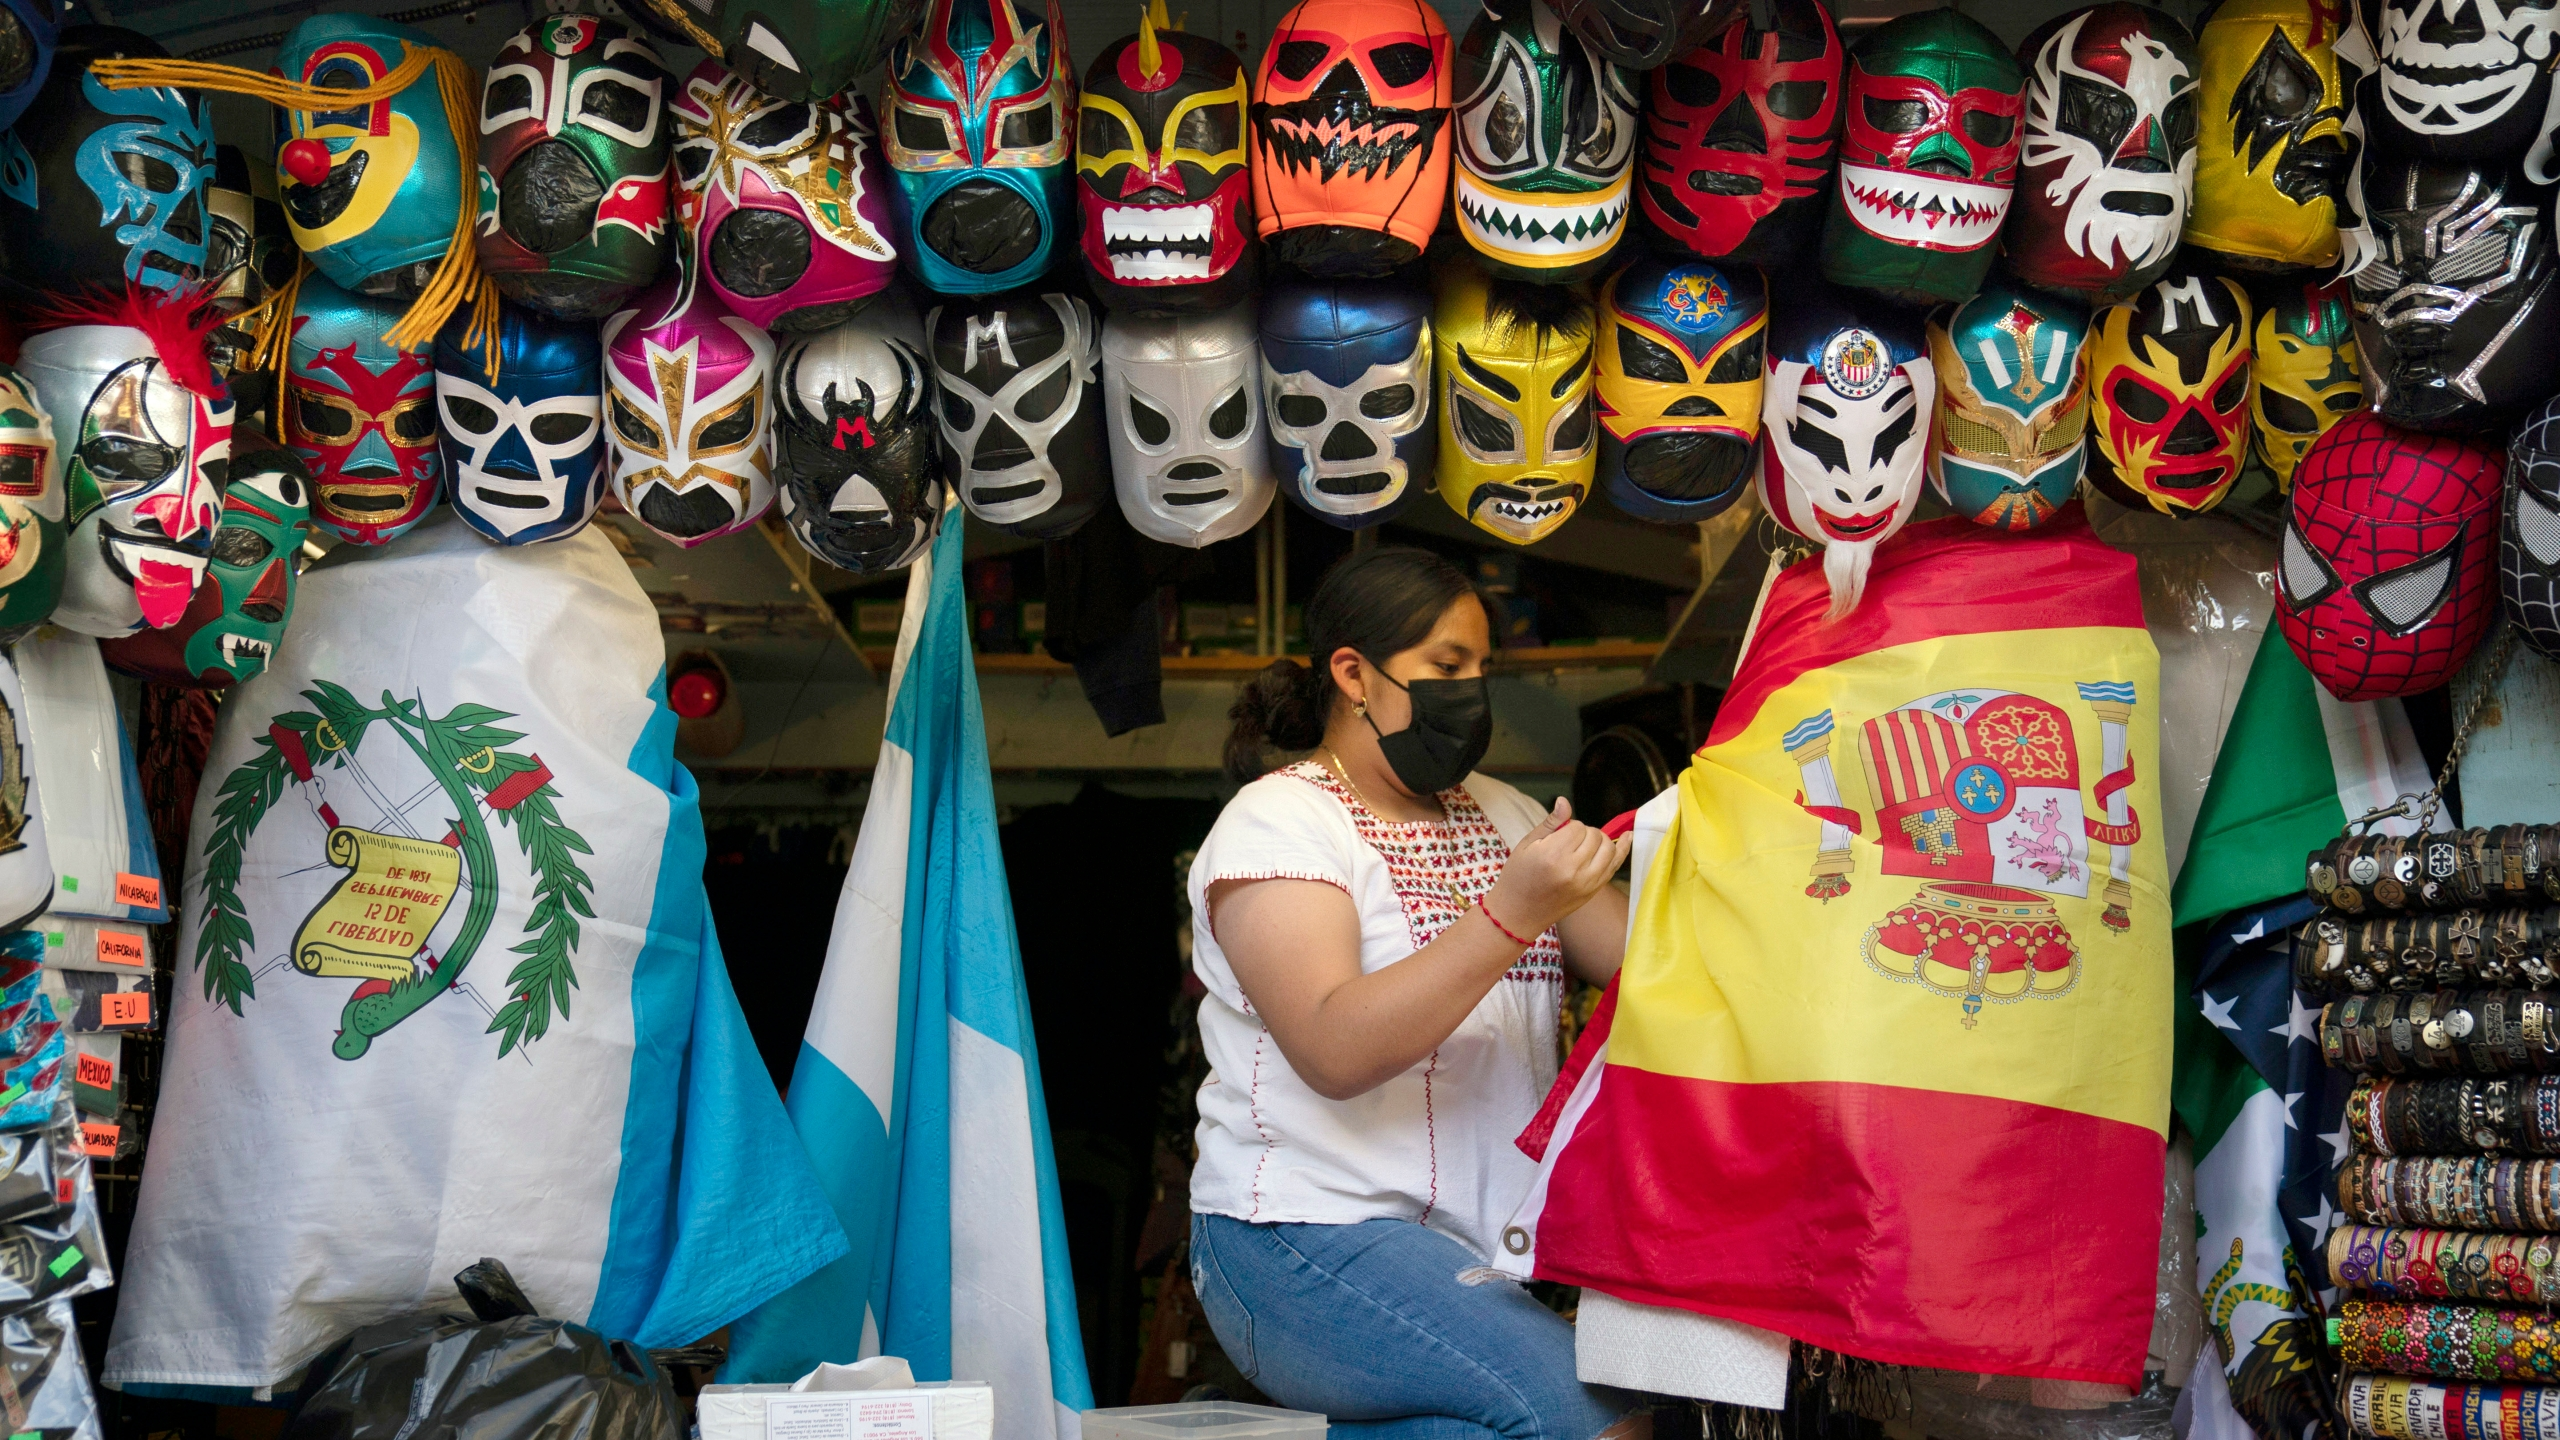 In this June 8, 2021, file photo, clerk Wendy Ramirez uses a Spanish flag to wrap souvenirs while preparing to close the store for the day on Olvera Street in Los Angeles. Los Angeles County residents are again required to wear masks indoors regardless of their vaccination status, a new mandate starting this weekend that health officials hope will reverse the latest spikes in coronavirus cases, hospitalizations and deaths. The rule went into effect late Saturday, July 17, for the nation's largest county, home to 11 million people, where a sharp increase in COVID-19 cases is led by the highly transmissible delta variant. (AP Photo/Jae C. Hong, File)